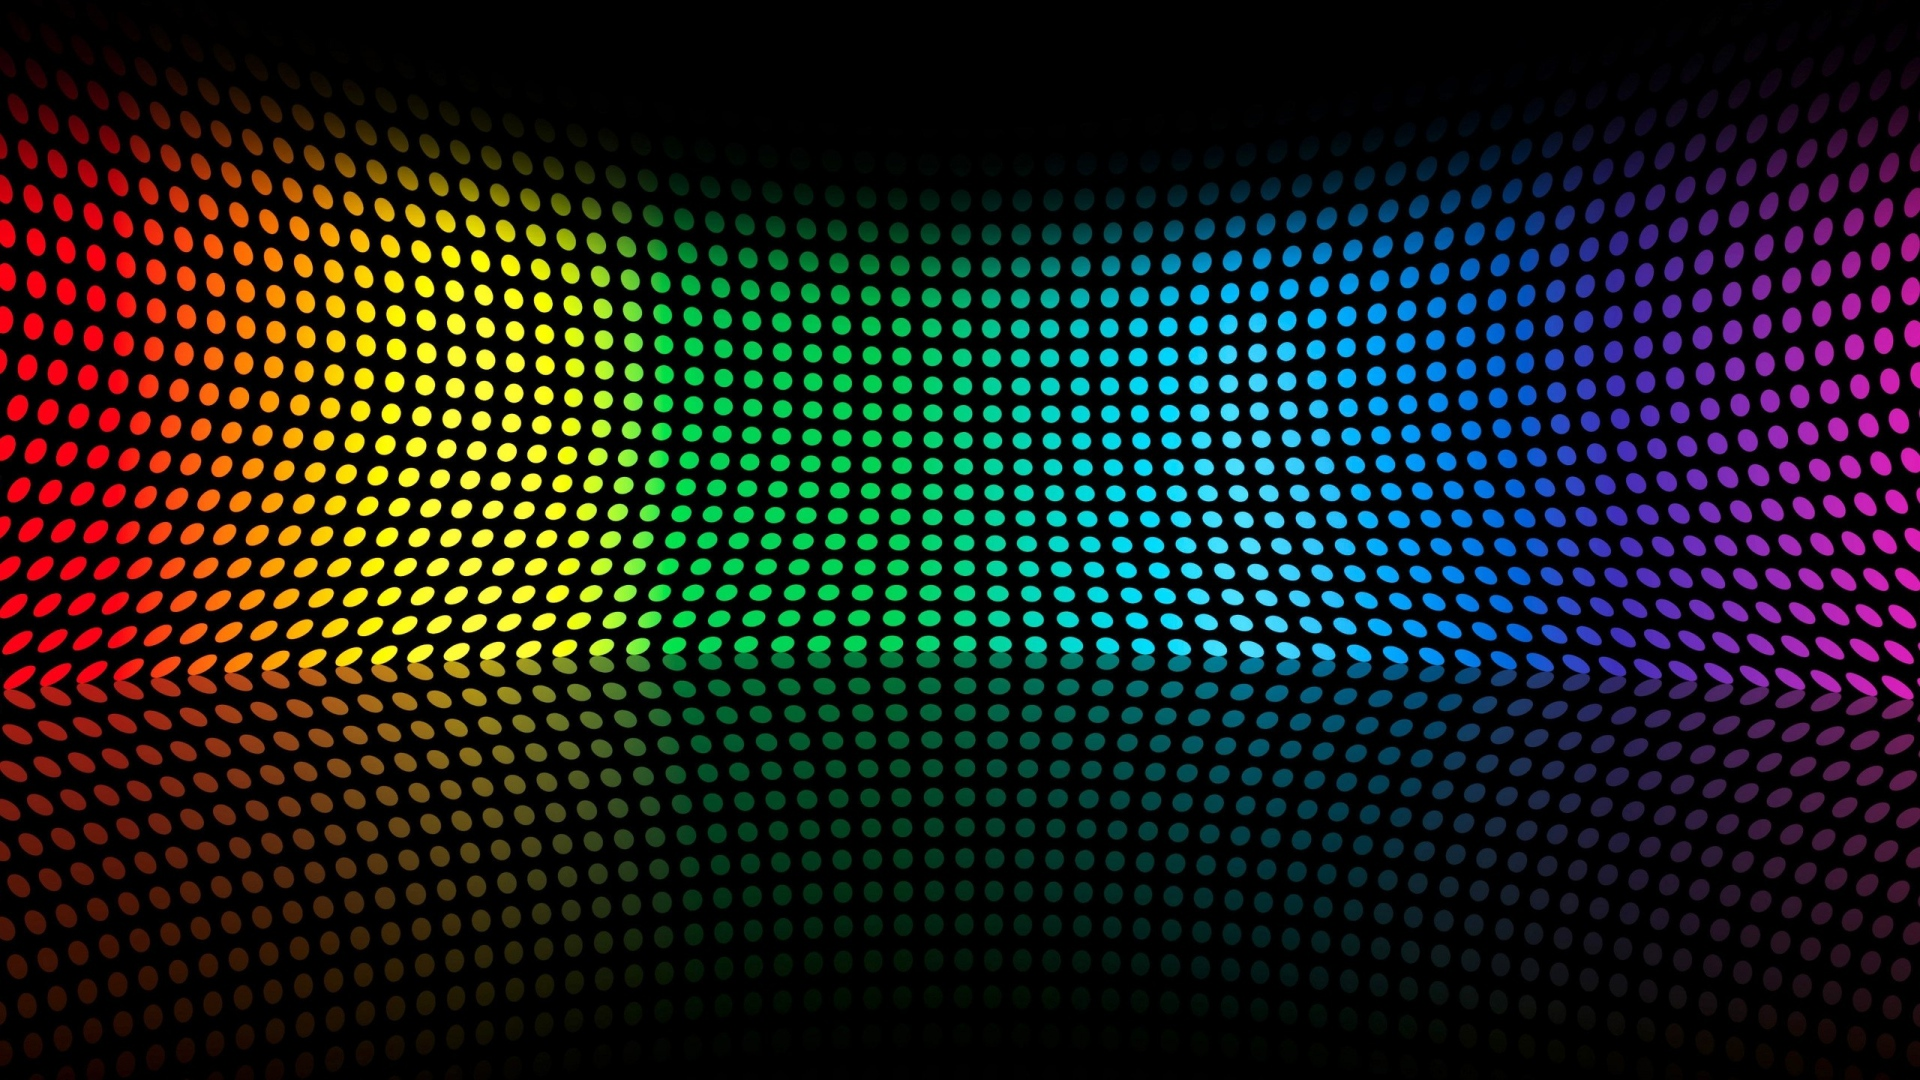 Ultra 4k hd lenovo wallpaper wallpapersafari - Hd Background Colorful Curved Disco Light Bending Pattern Wallpaper